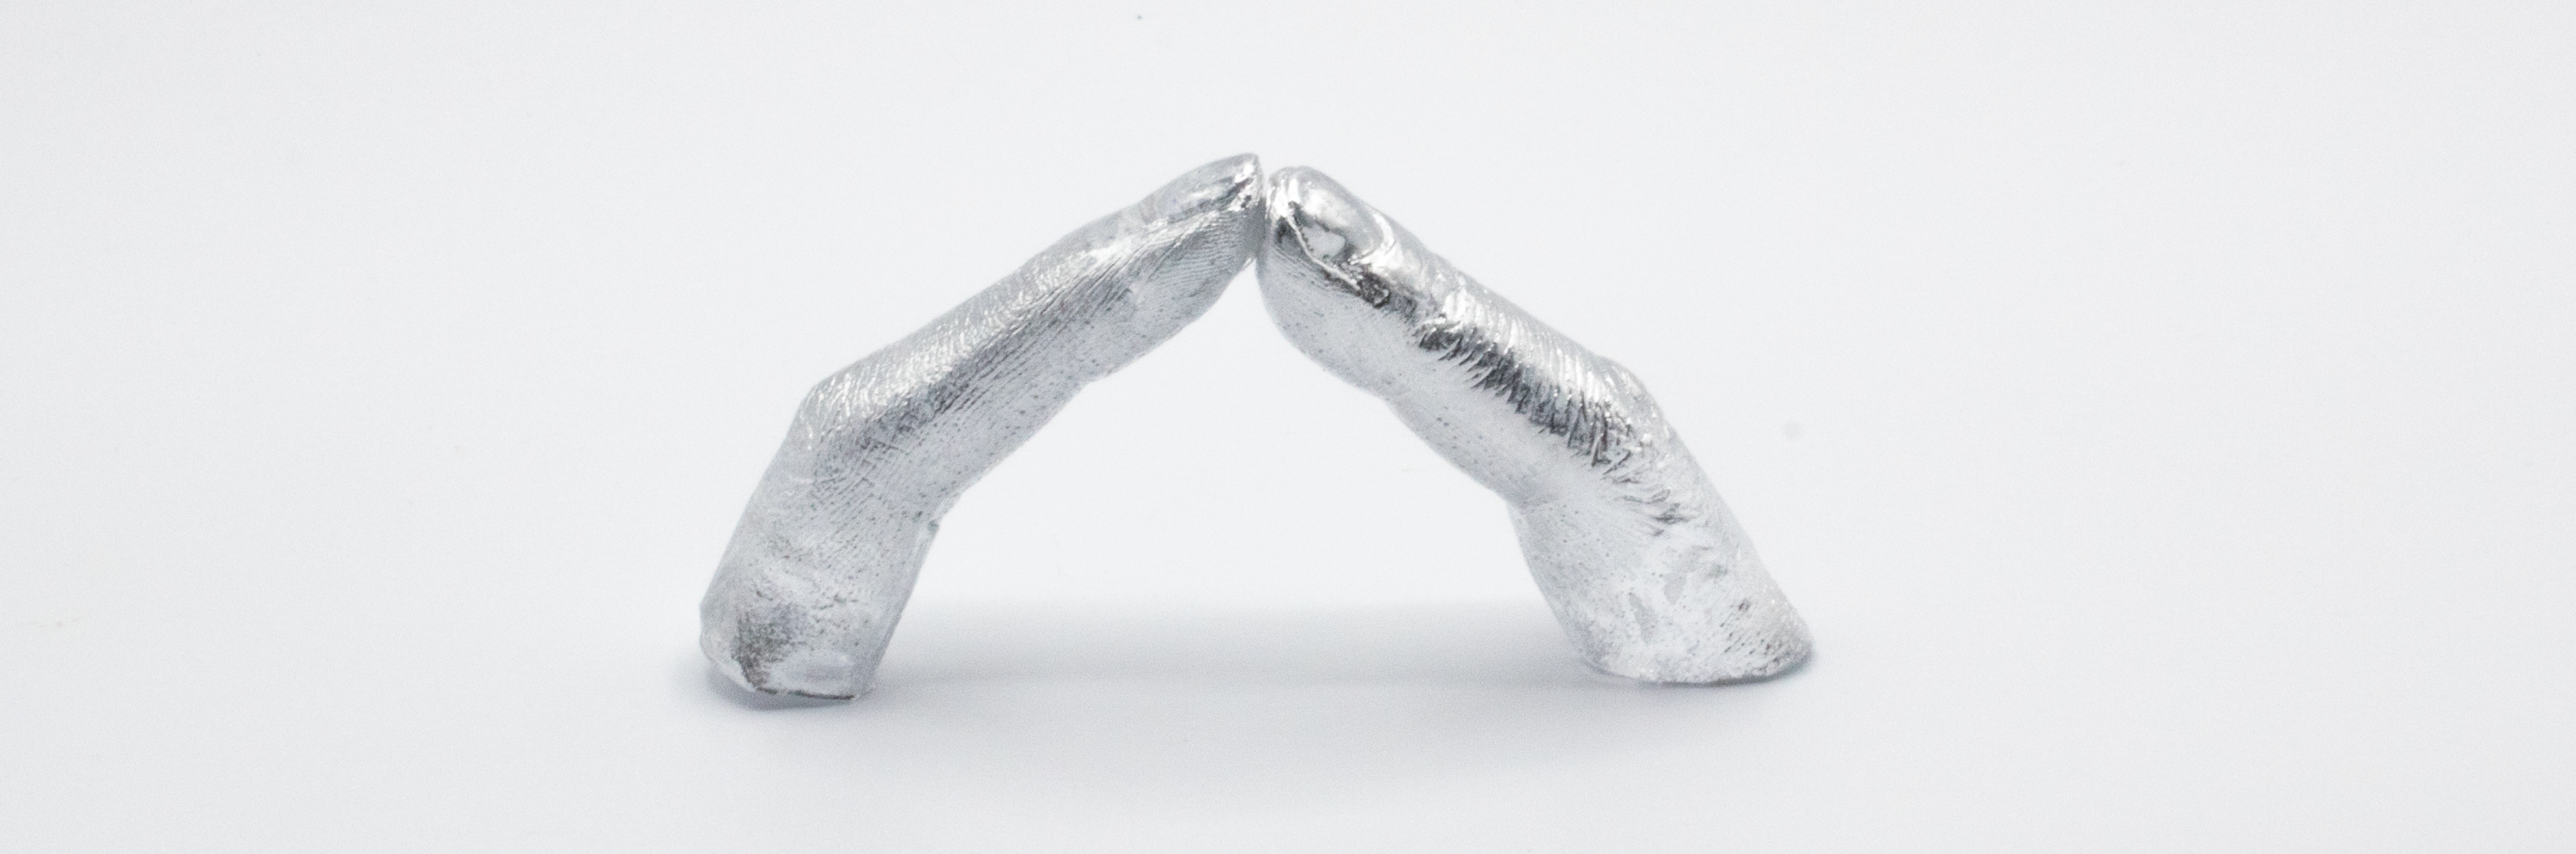 This piece has three series of pictures that indicated a process of two fingers touching each other. In the first picture, there is a transparent finger that stands as a single object, meanwhile, it has a steel spike reach out of the fingertip. The second